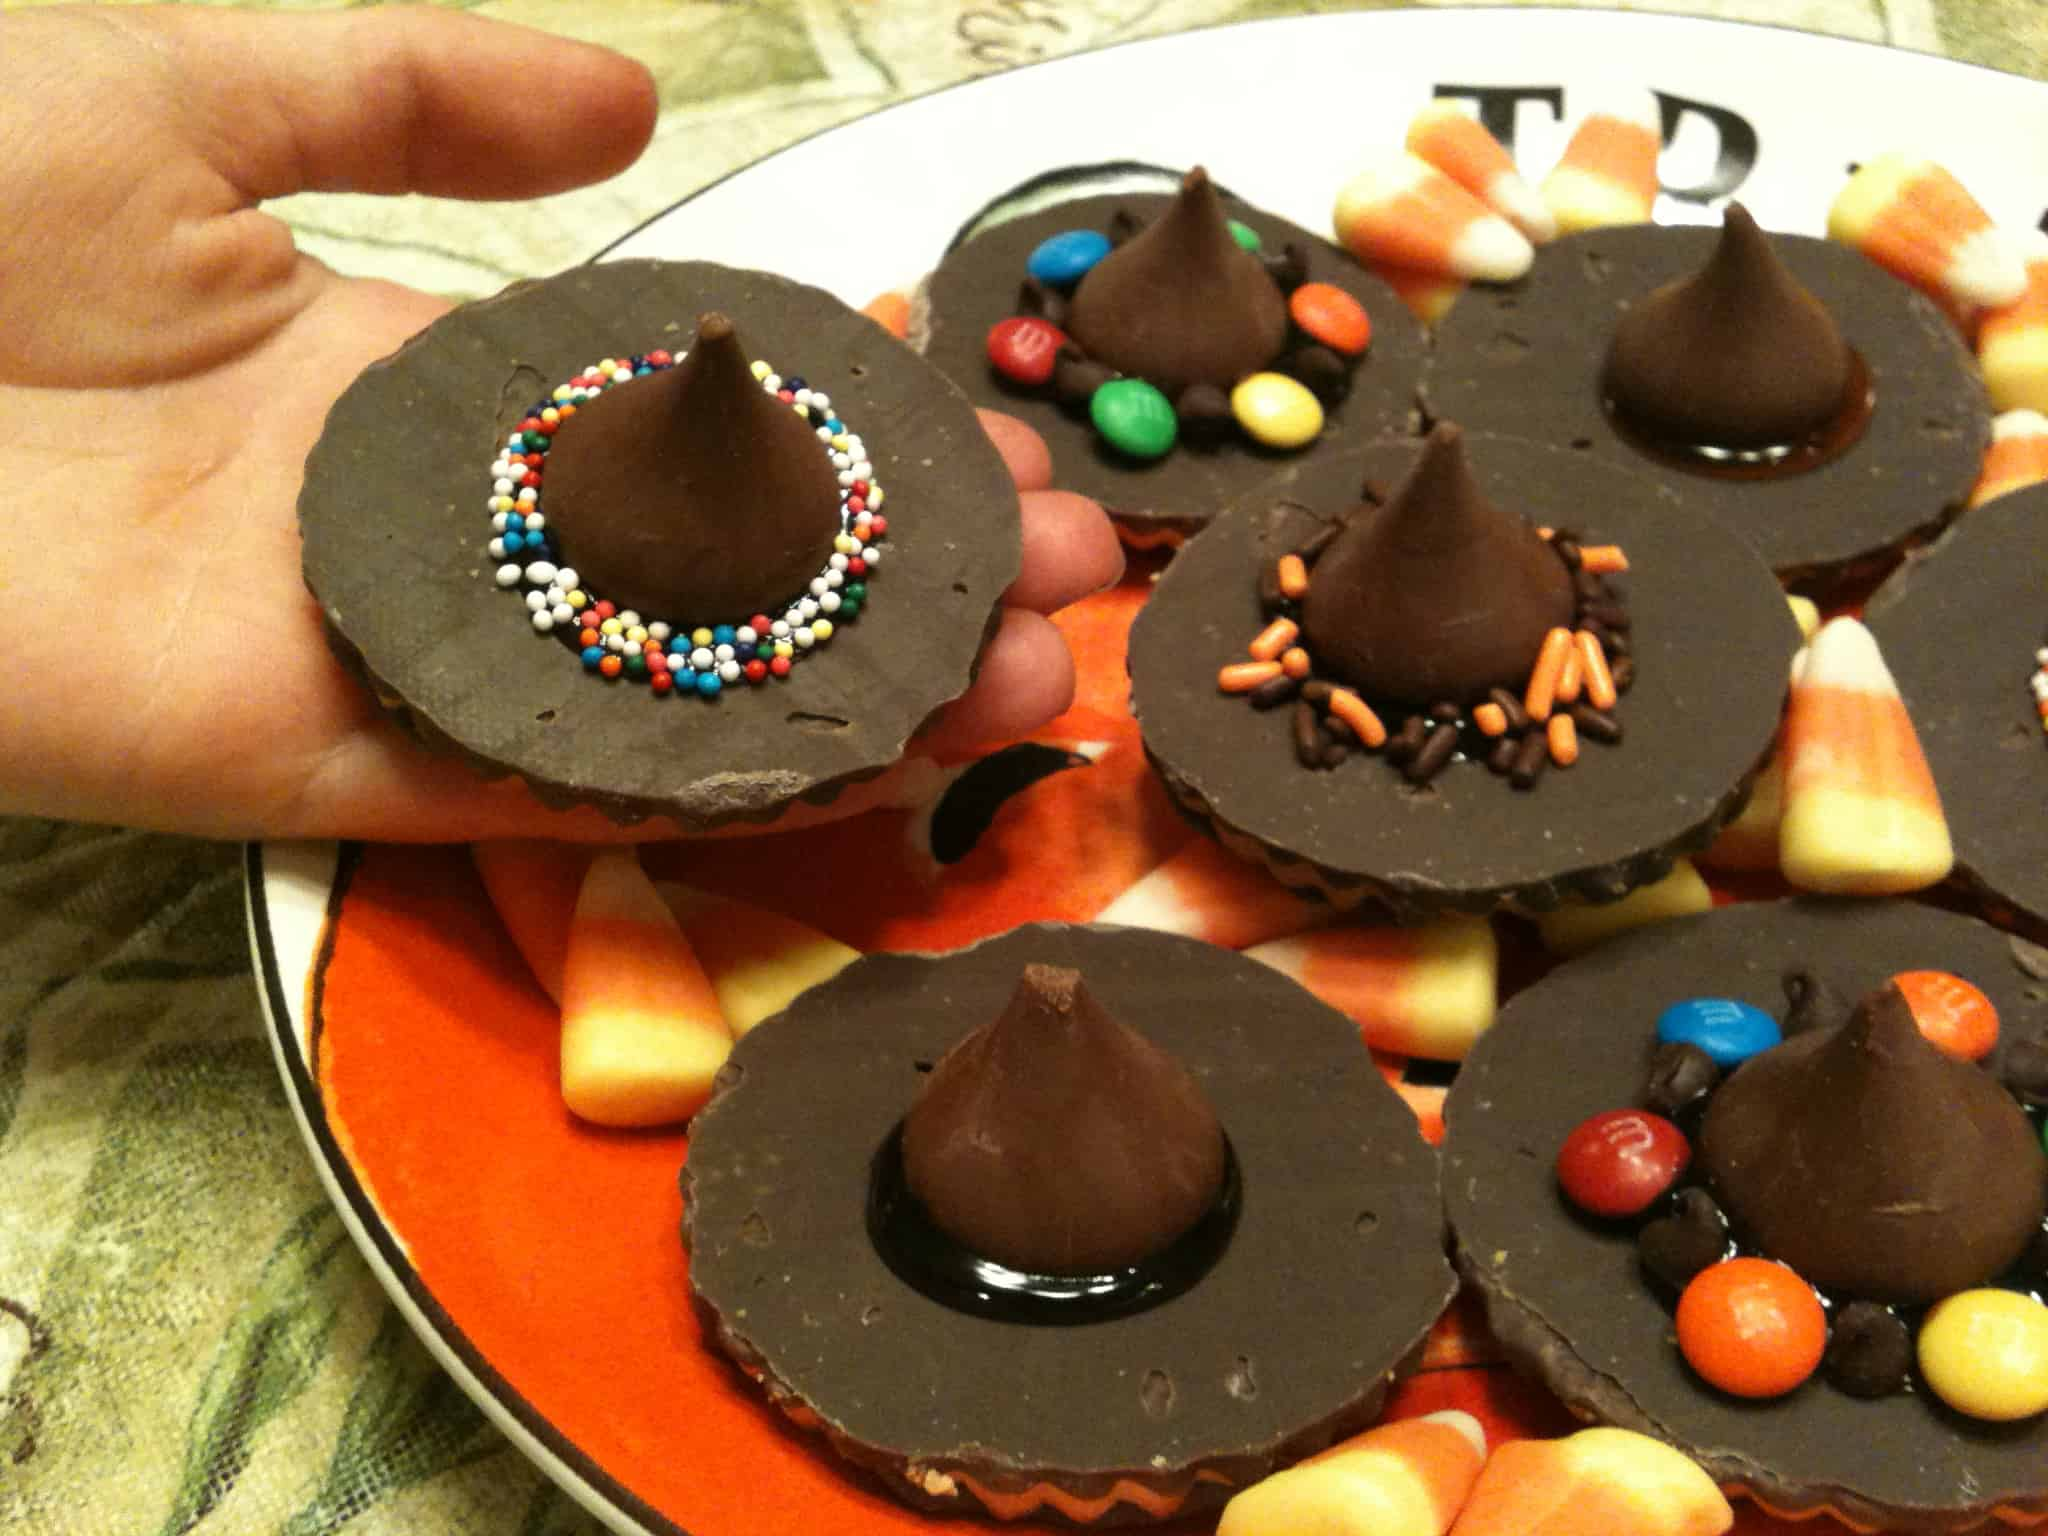 halloween recipes round-up: 5 tasty treats - juggling with julia